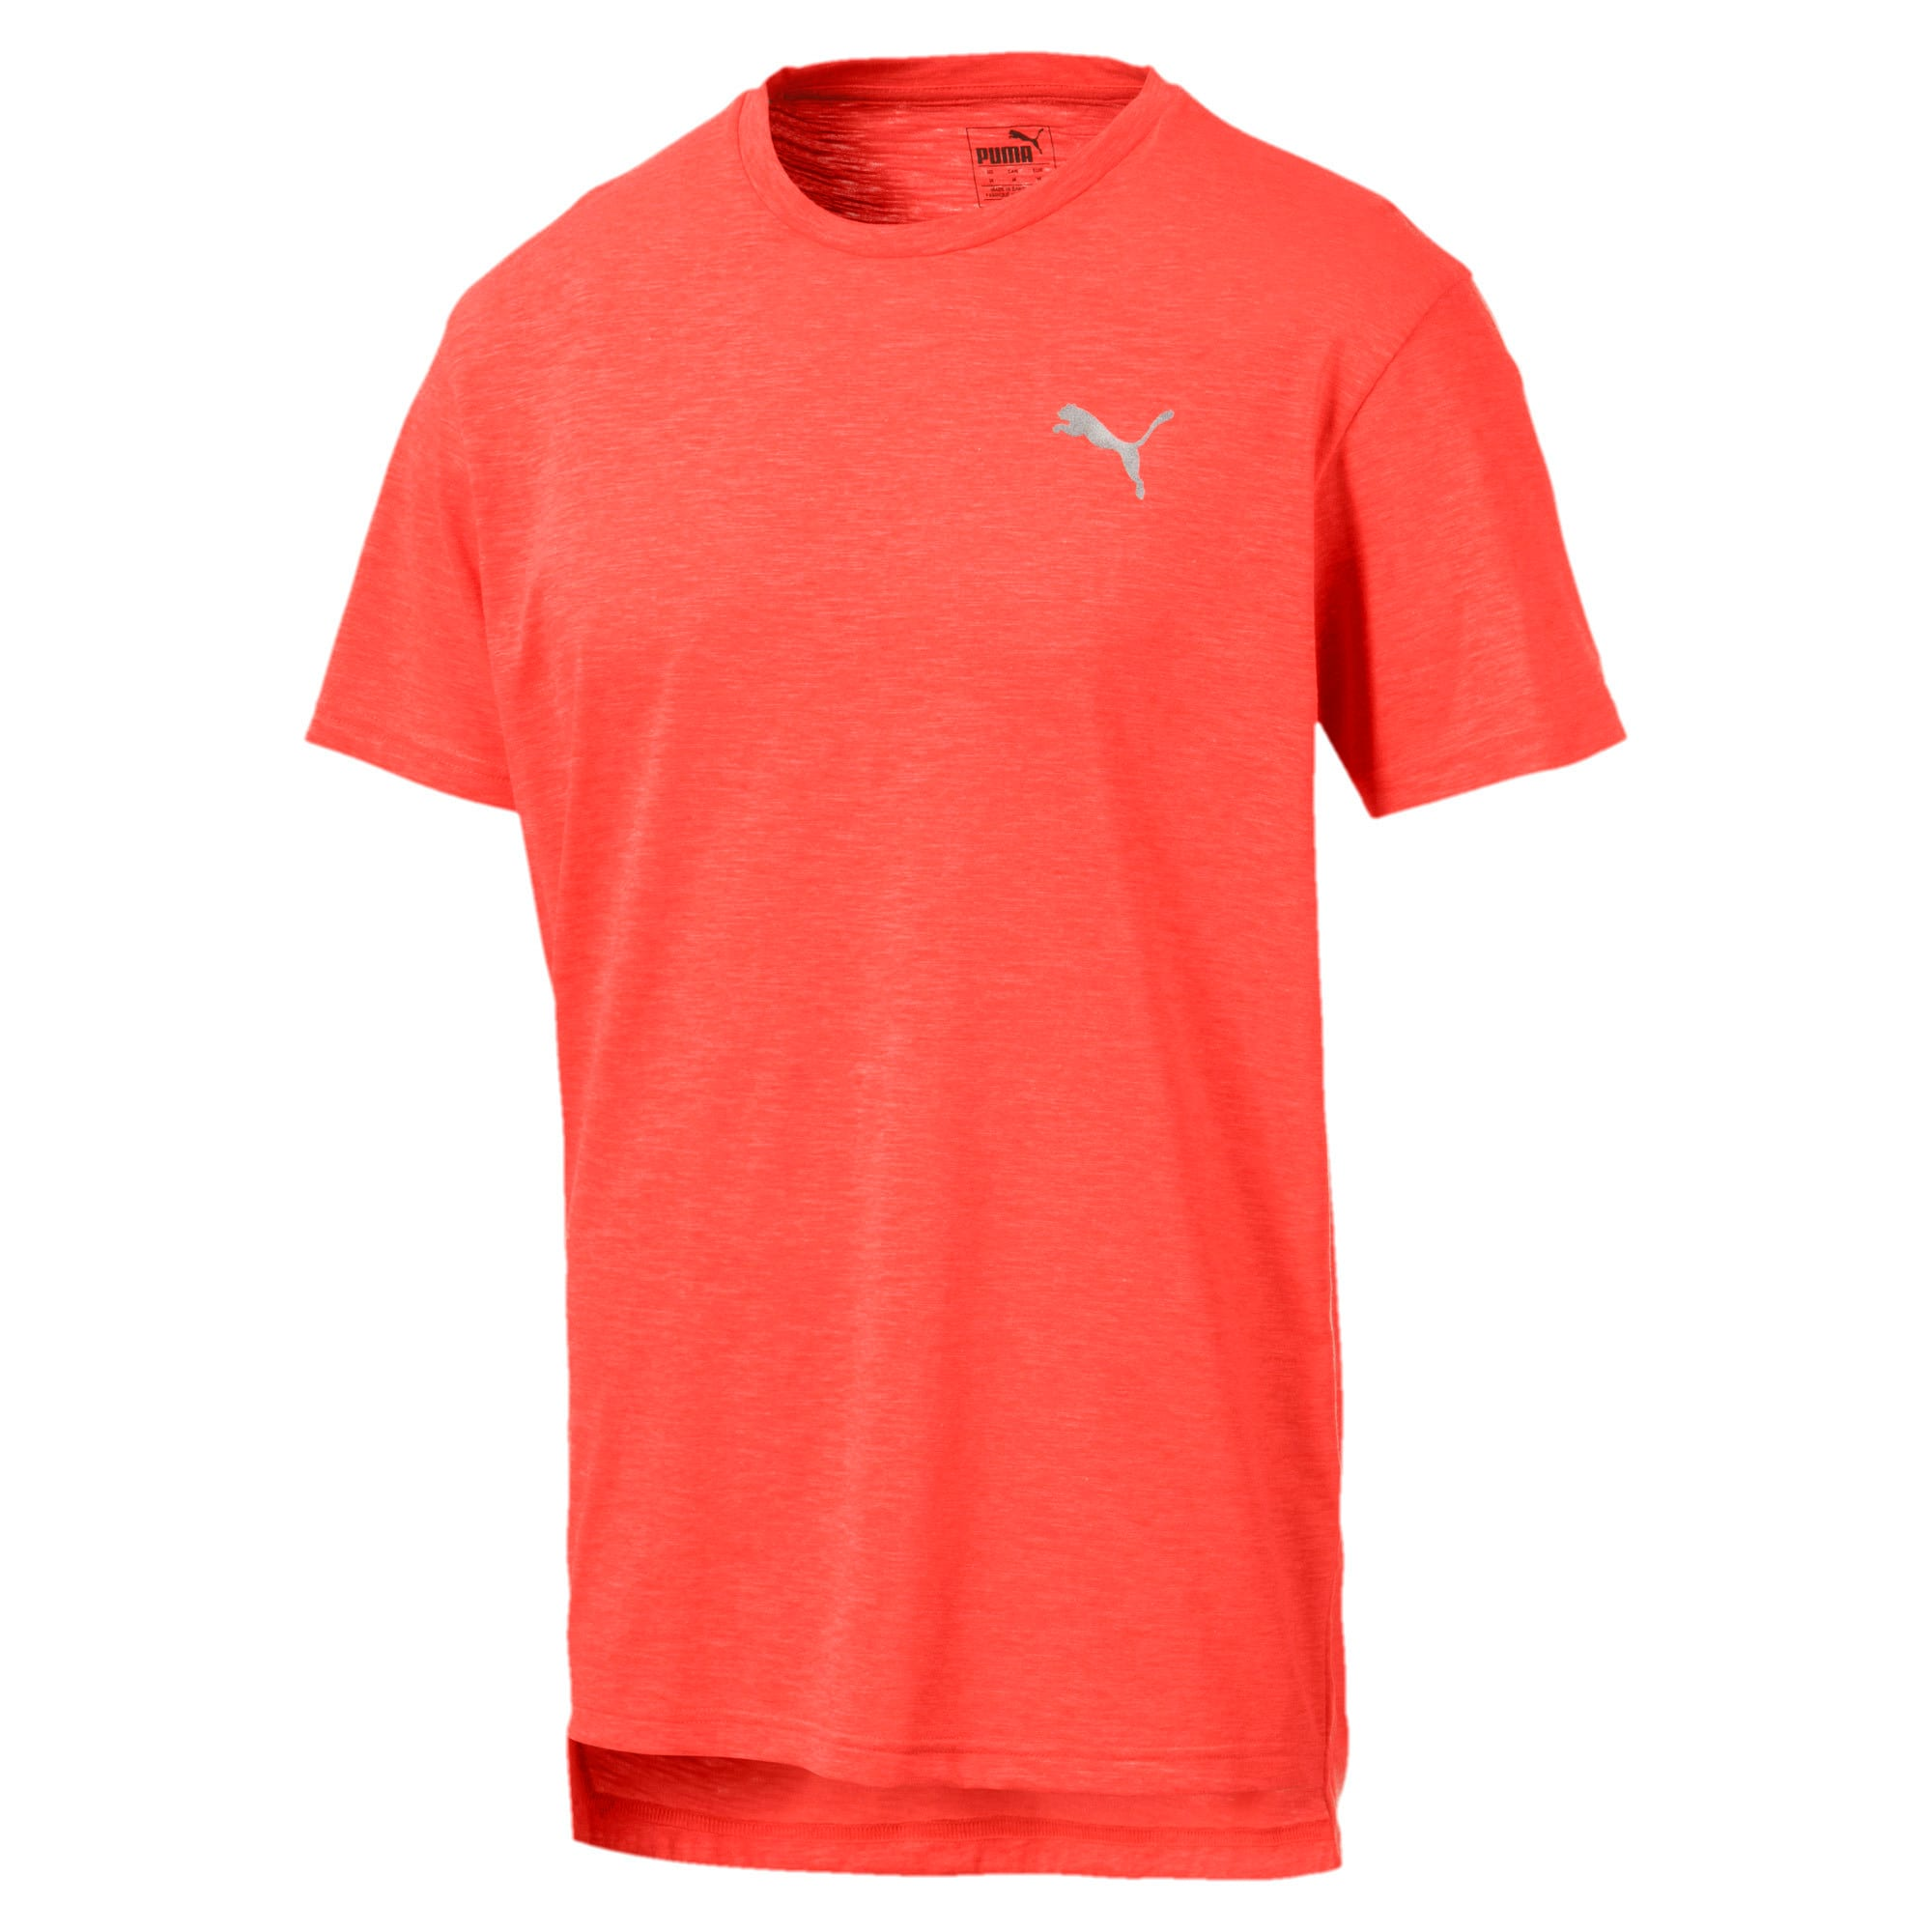 Thumbnail 4 of Energy Short Sleeve Men's Training Tee, Nrgy Red Heather, medium